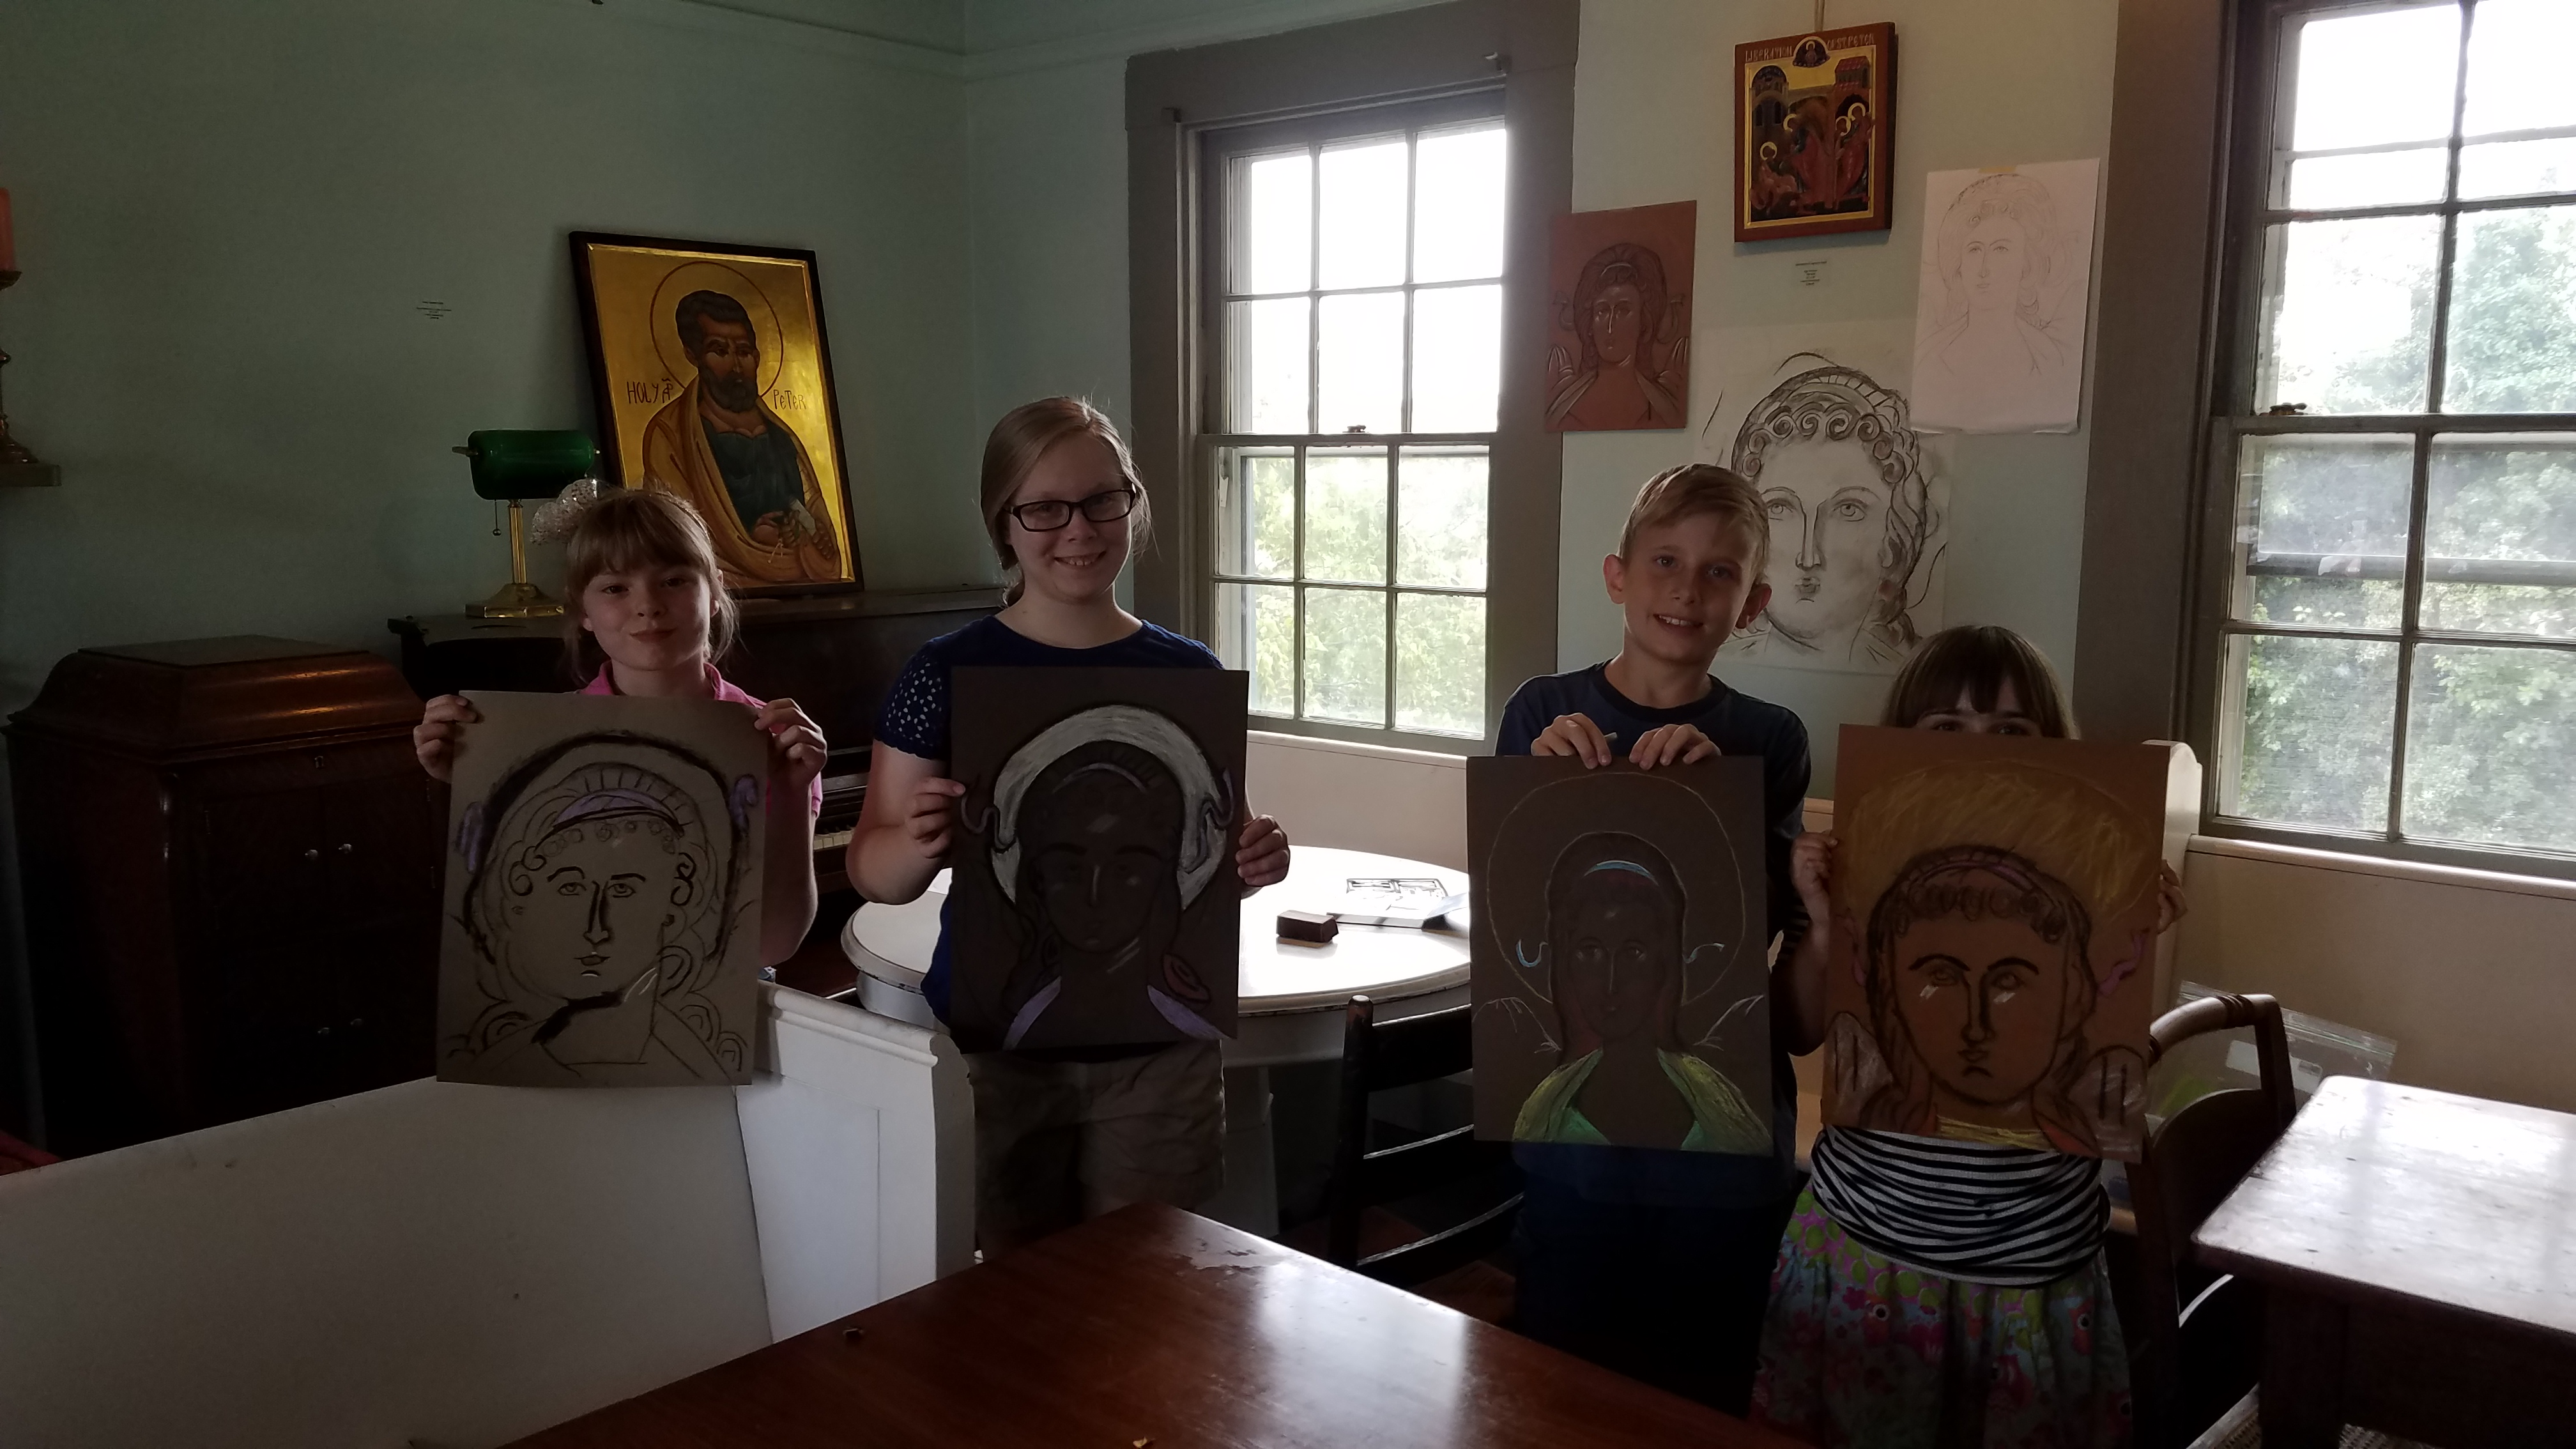 Kids beginning Drawing icon class20170811_114715